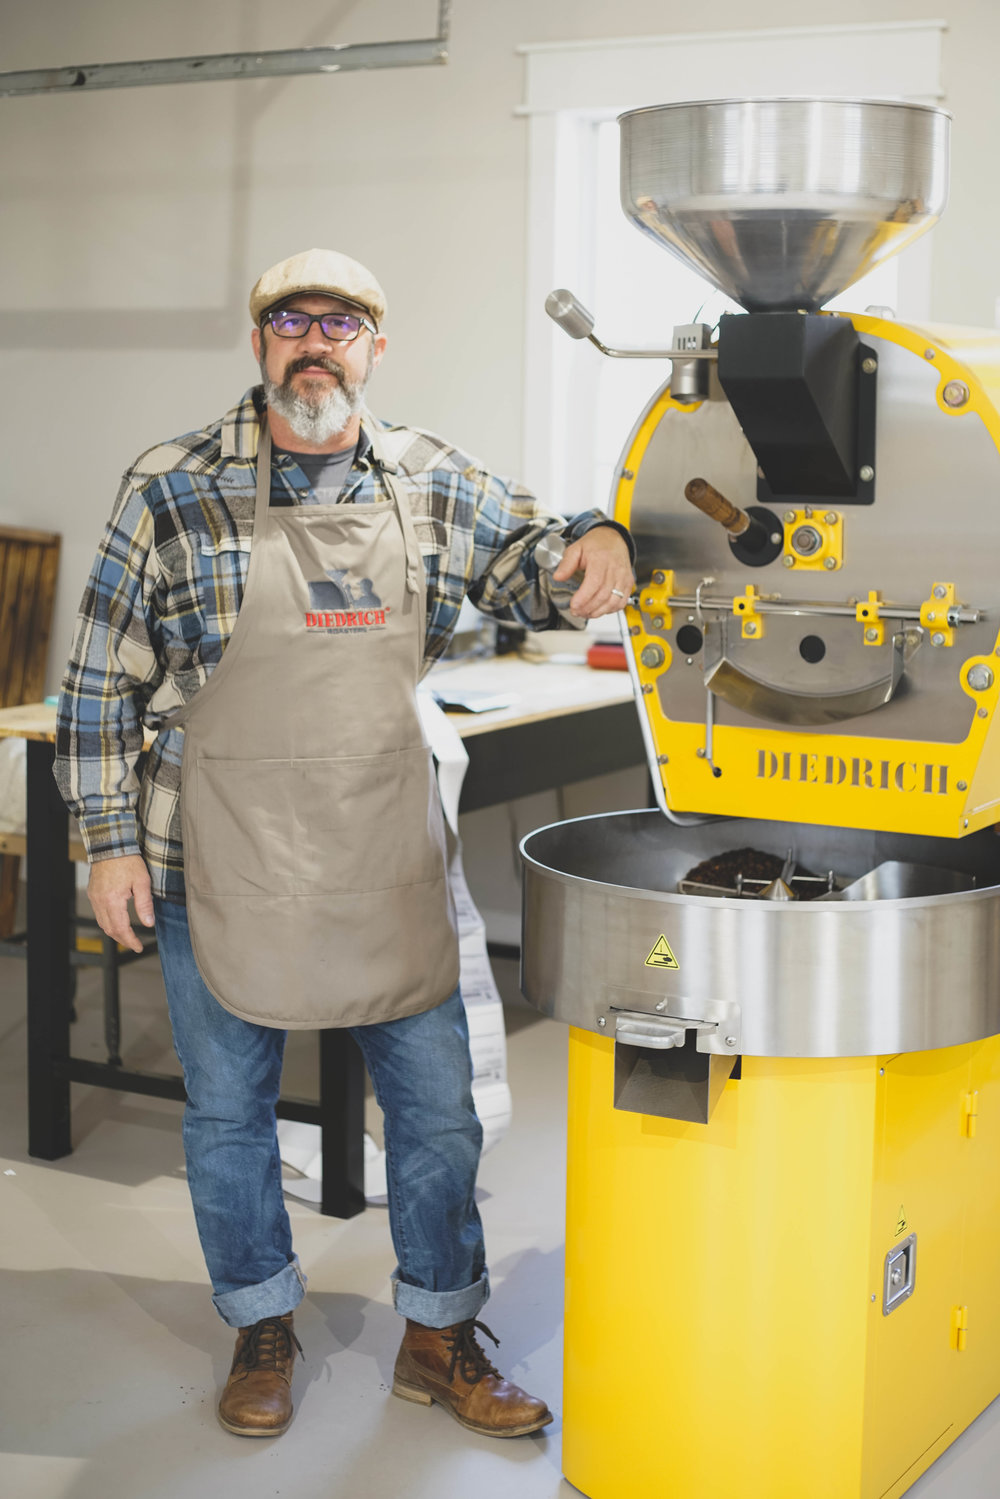 Rob Wilson is a member of Roasters Guild, and Specialty Coffee Association. His passion is coffee beans. He's a simple guy with a dream.